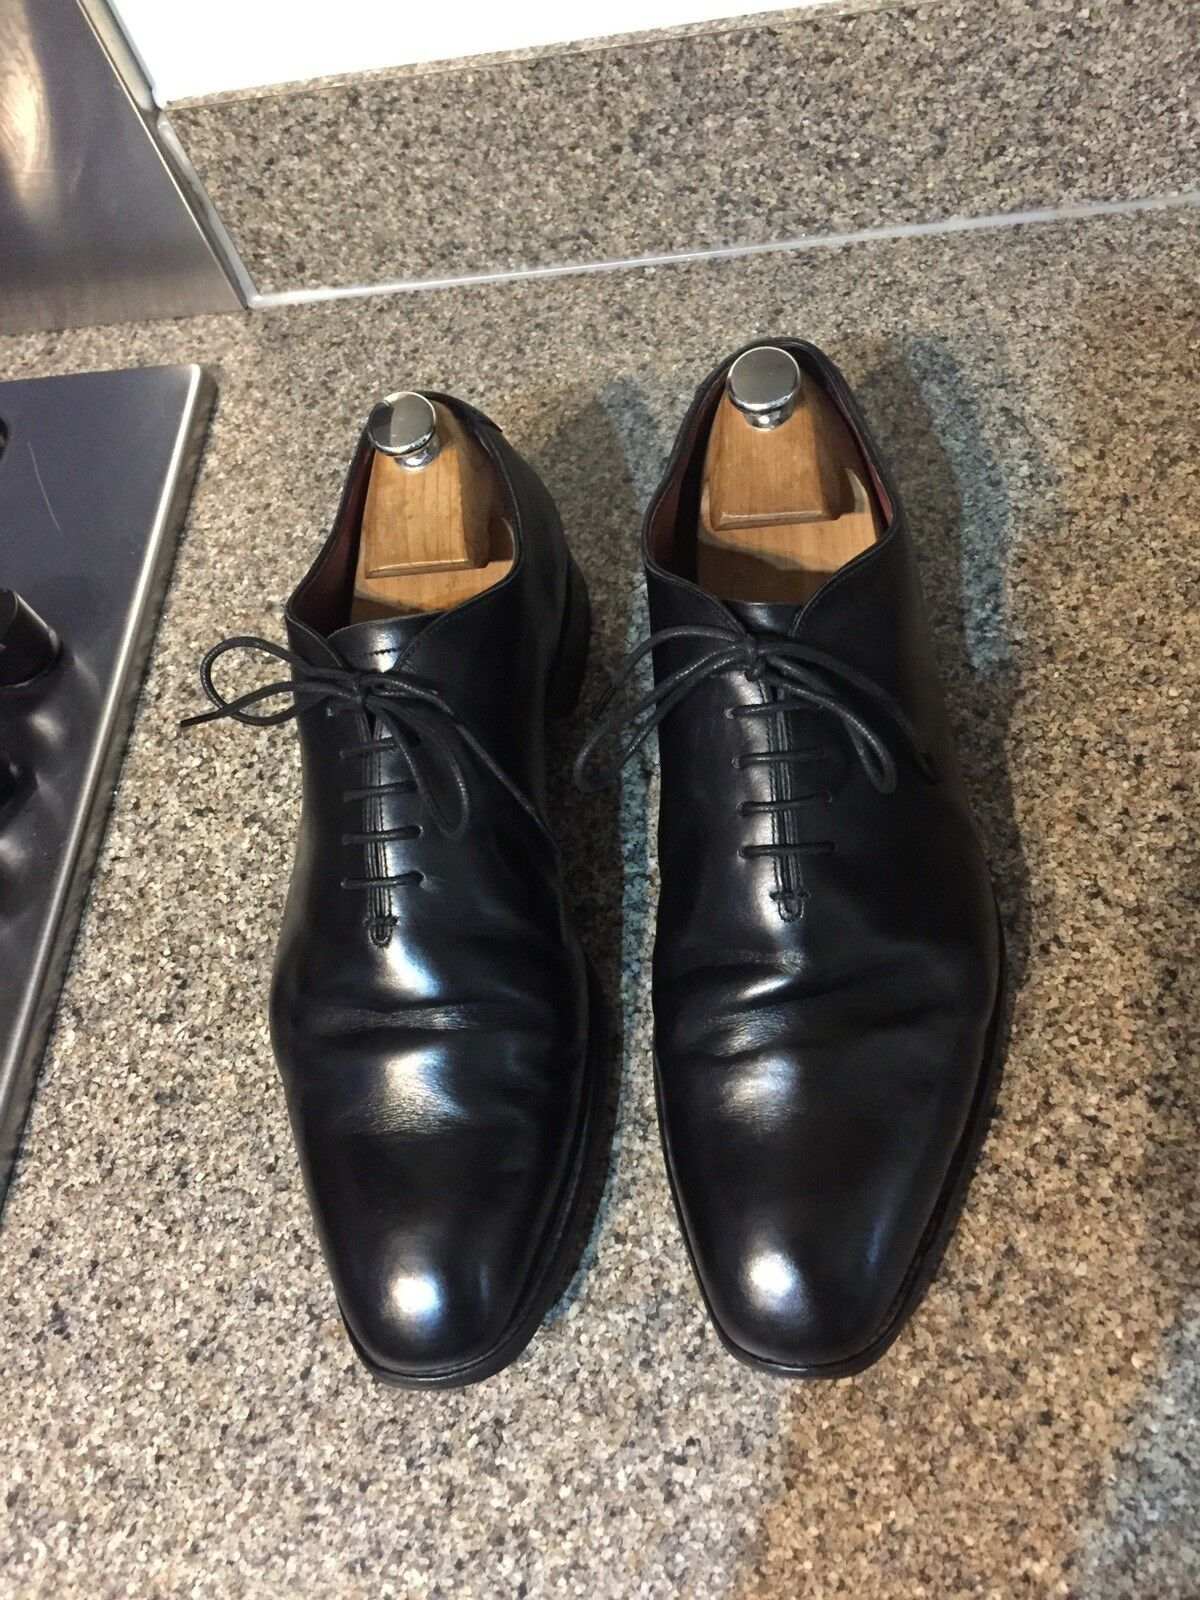 35f8077cdaa8 Charles Tyrwhitt homme homme homme noir cuir veau Made in England wholecut  Chaussures 10.5 F | Service Supremacy 6ae307